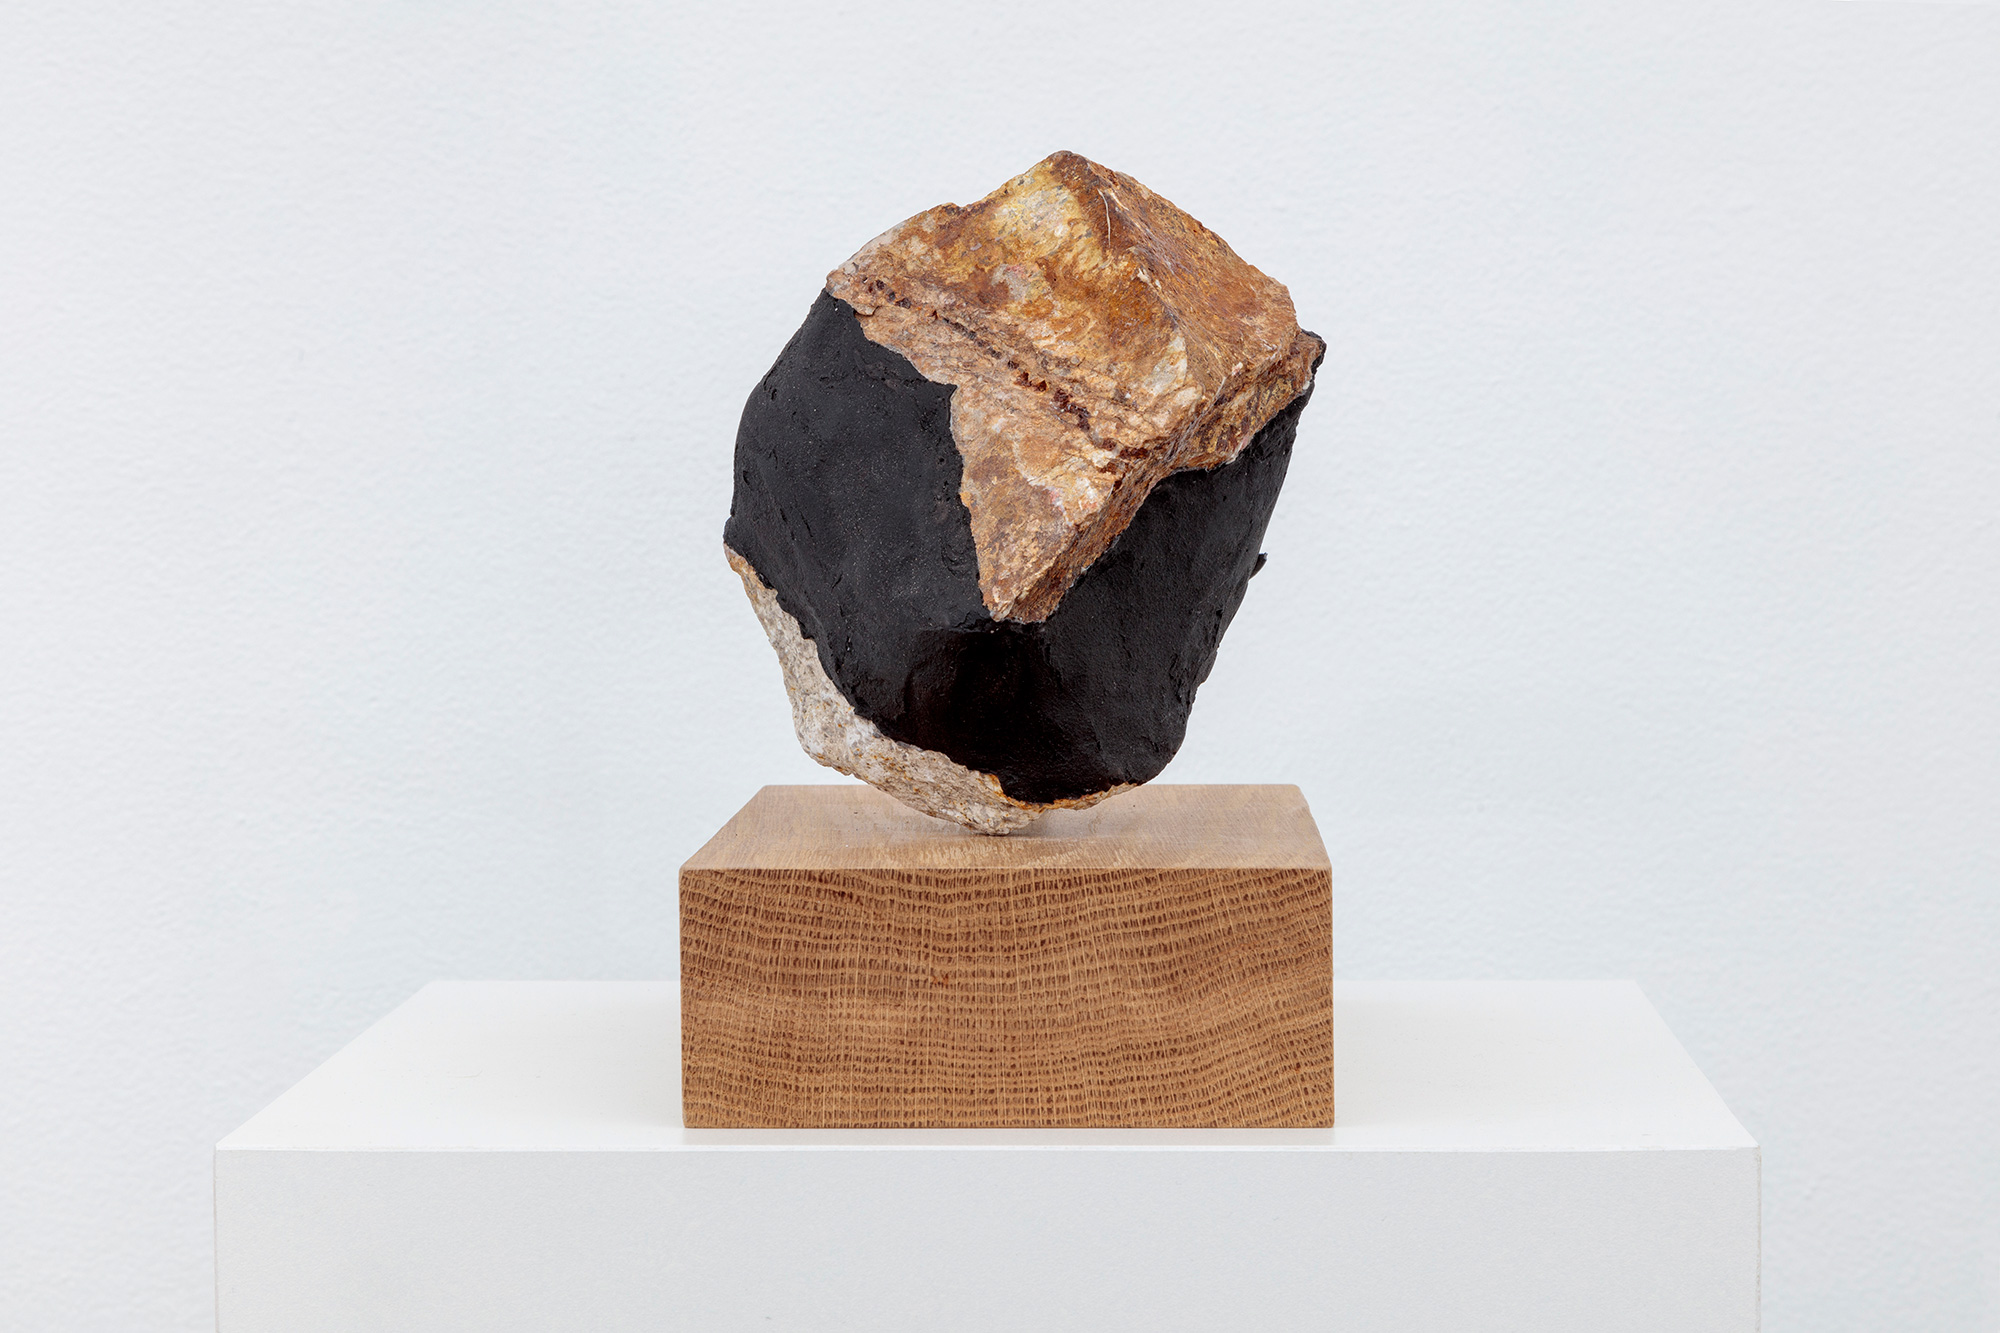 Sculpture with rock on wooden pedestal